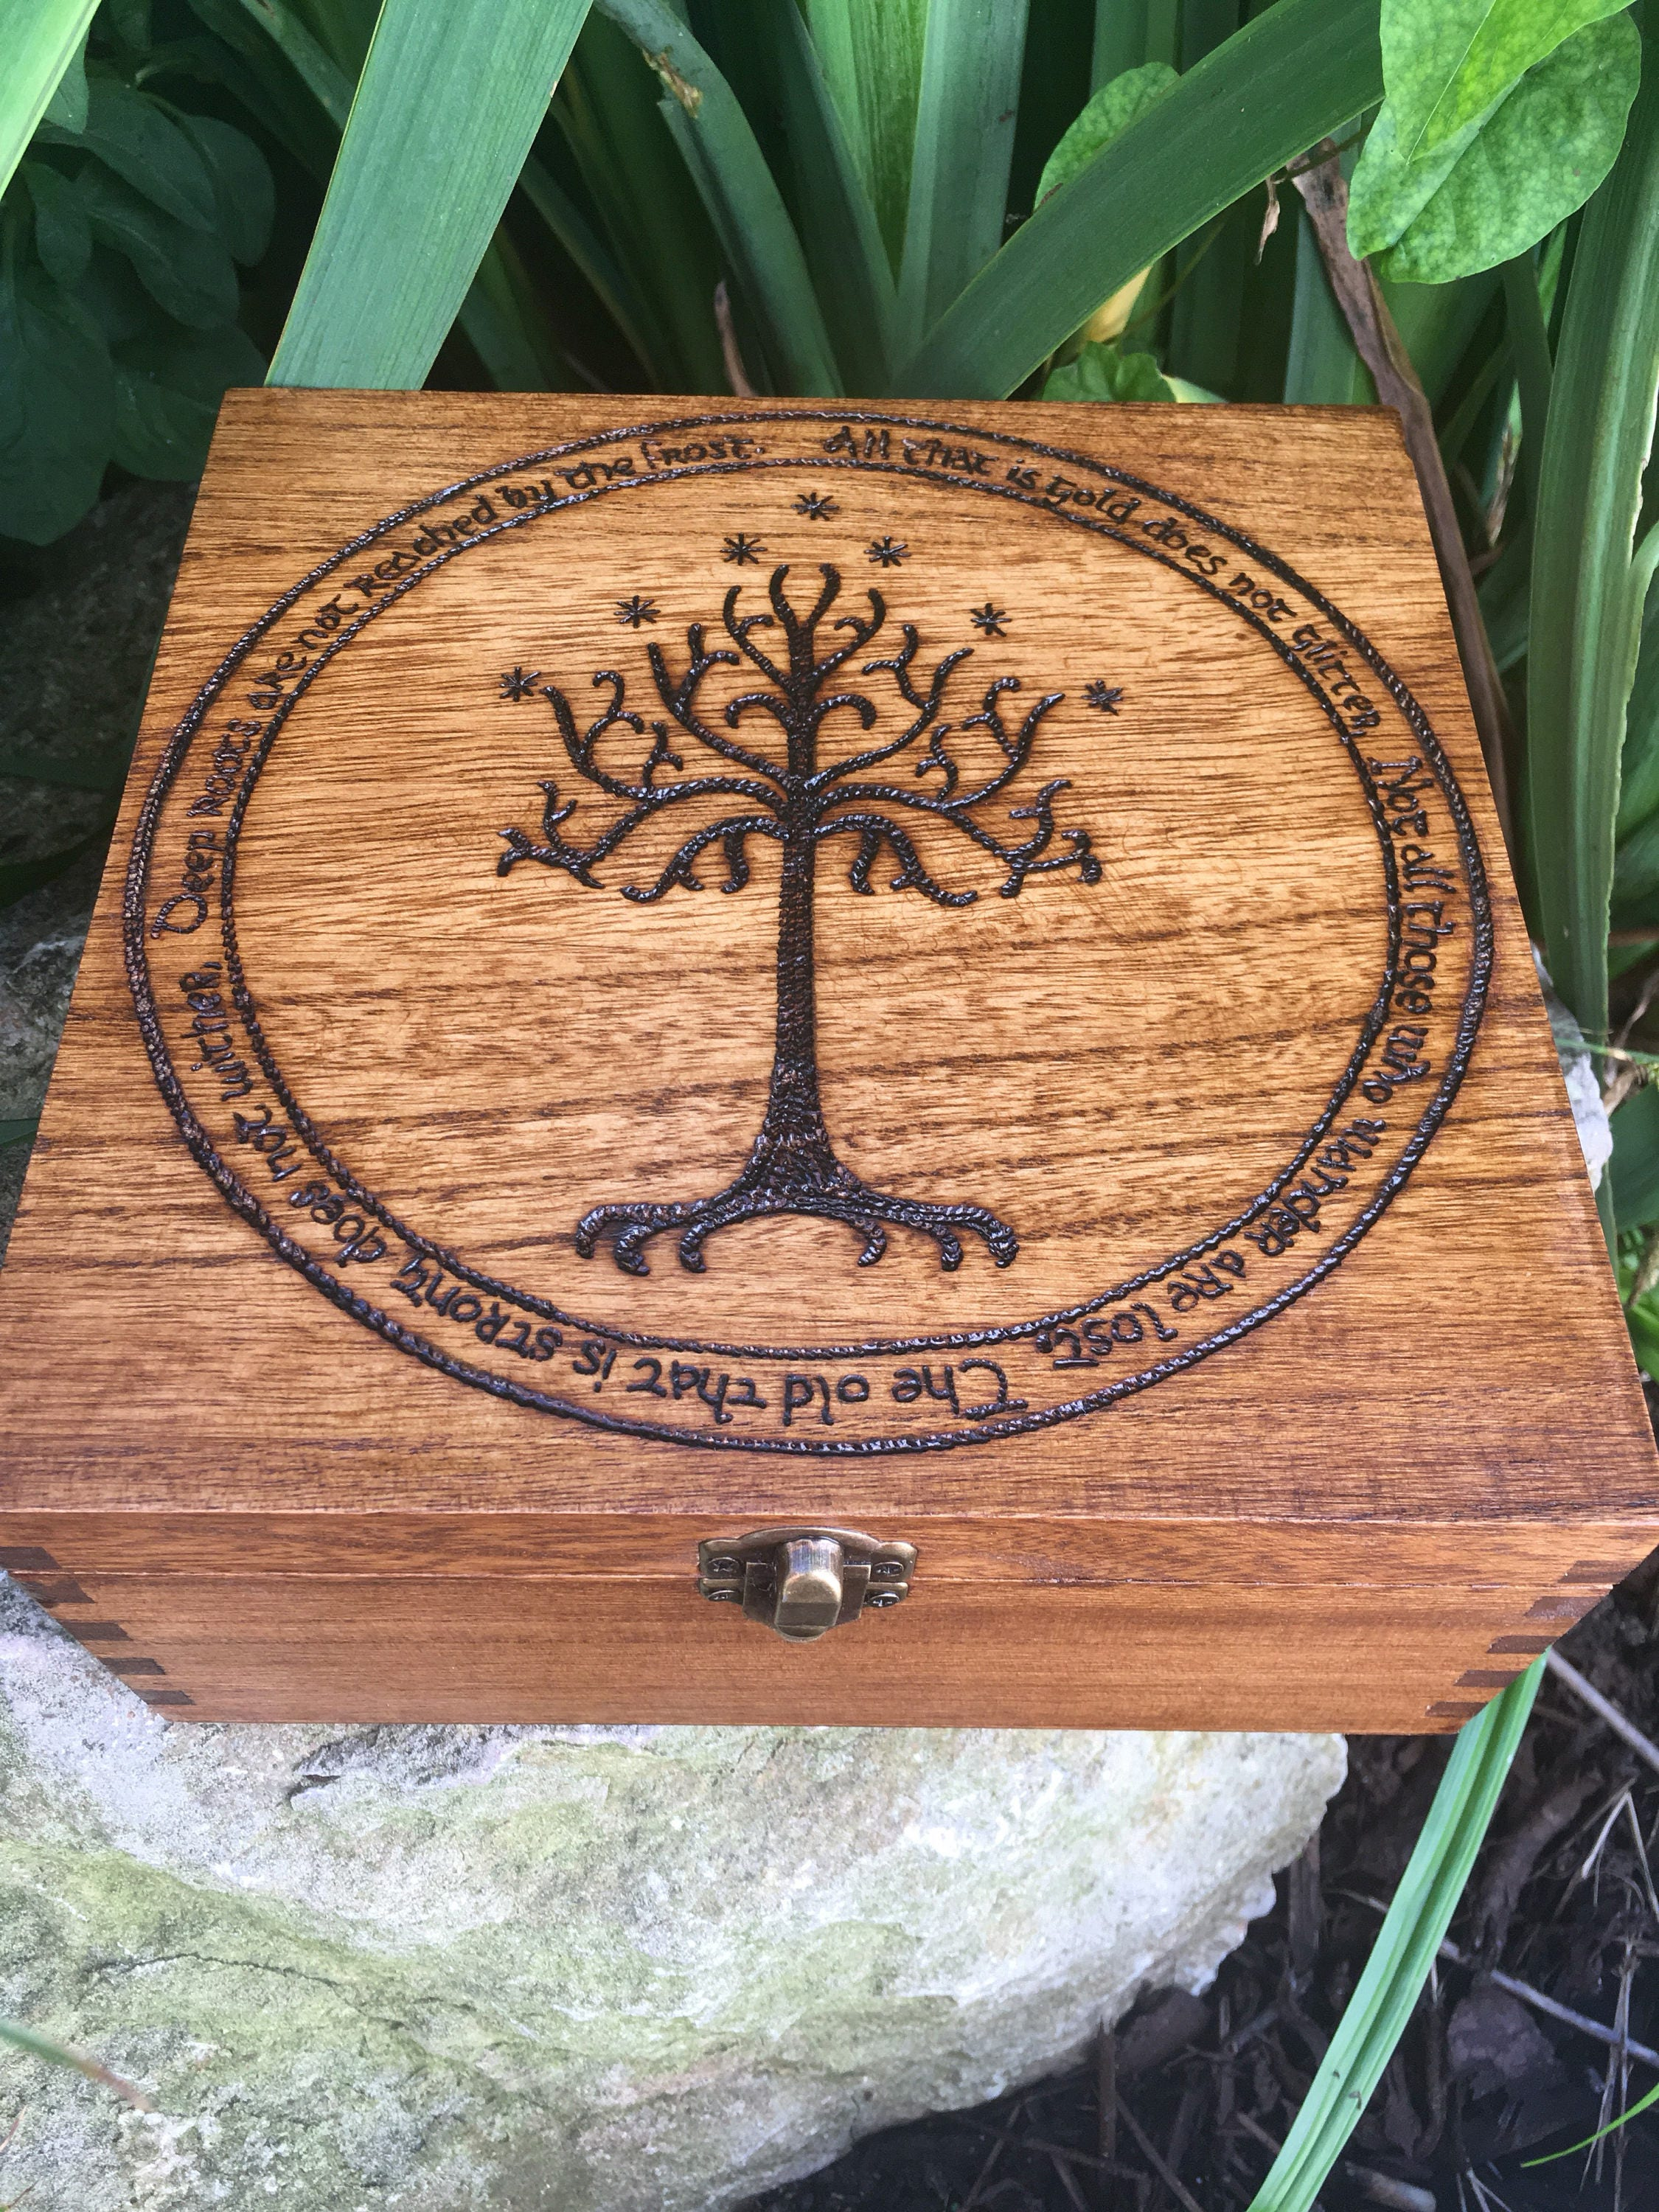 Lord of the rings inspired box jrr tolkien the hobbit zoom biocorpaavc Choice Image